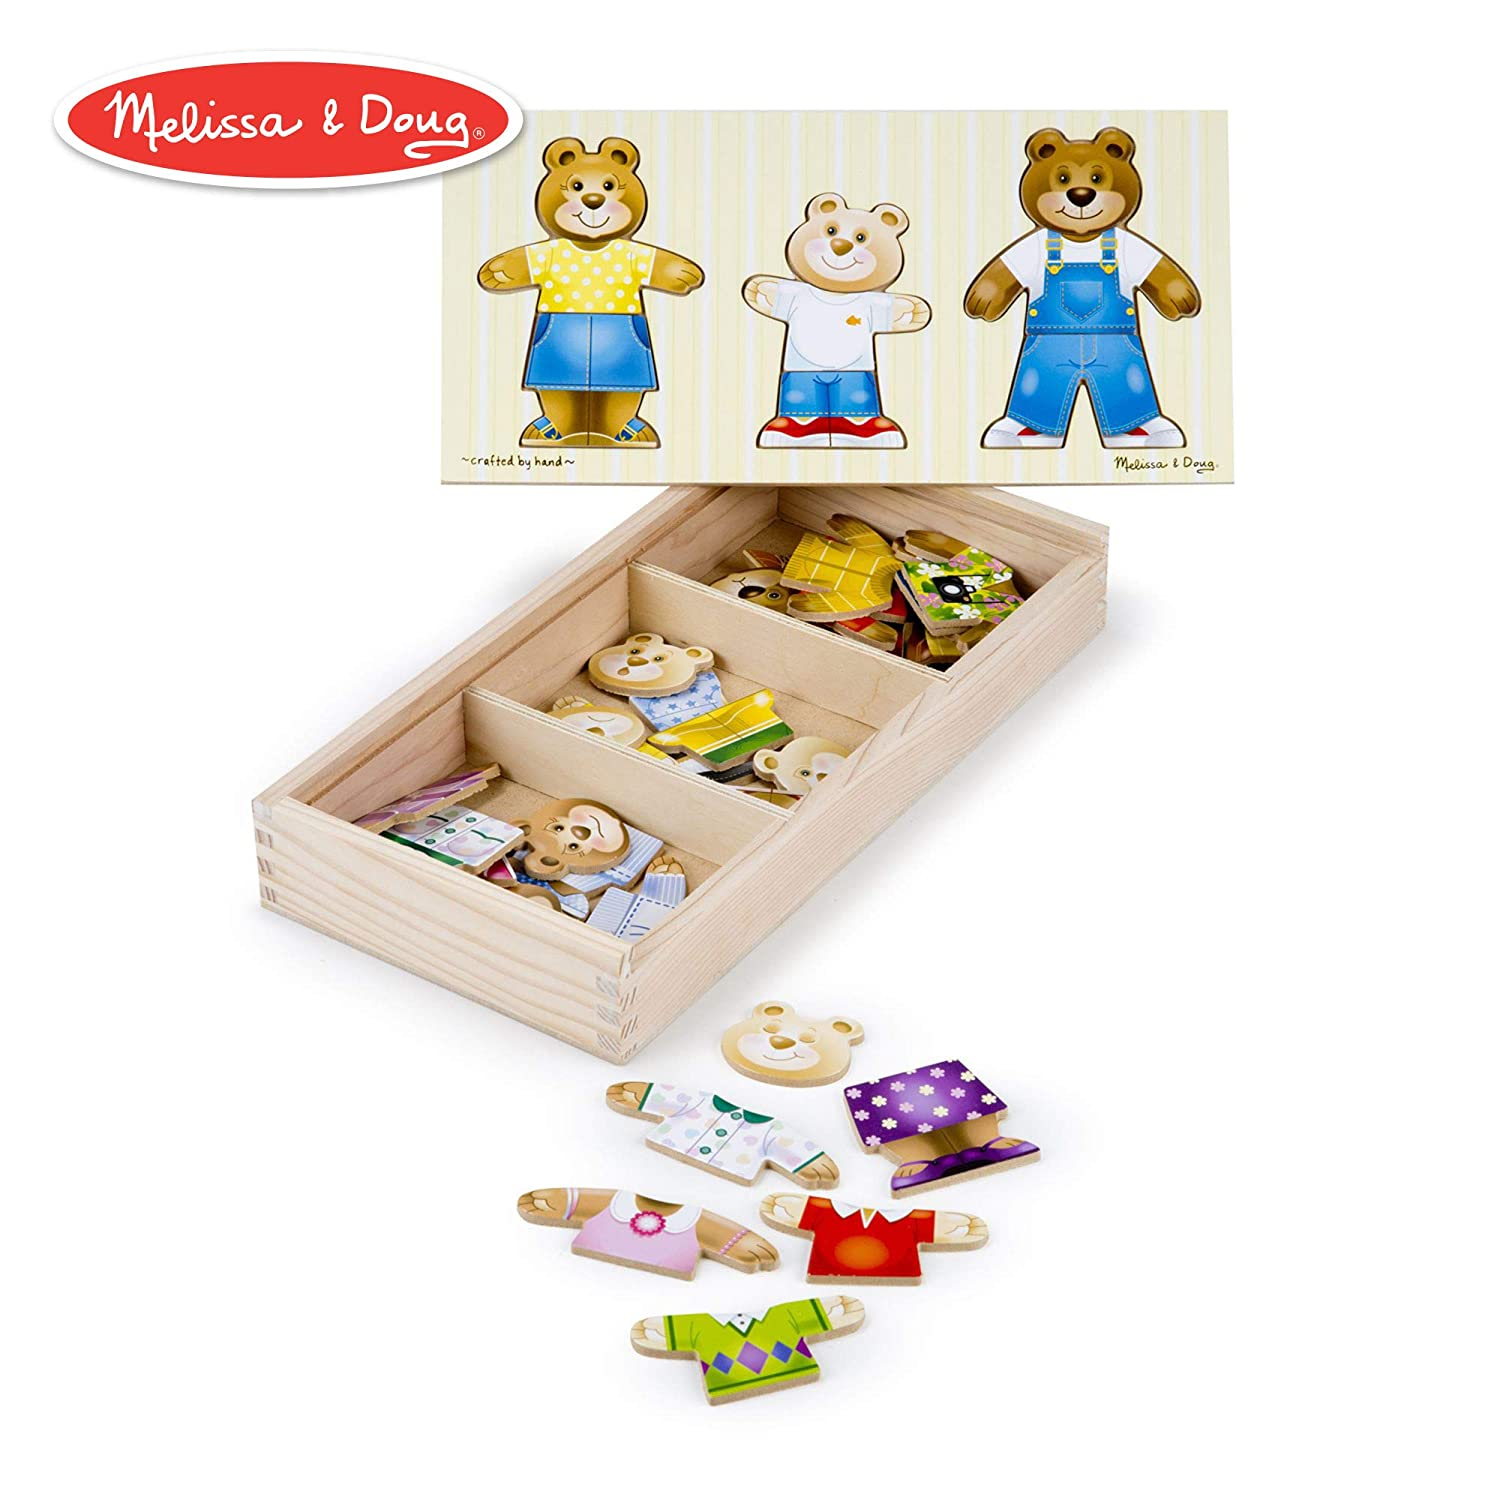 Puzzles & Games Lovely 1 Iron Box Cartoon Animals Baby Wooden Puzzle Toys 6 In For Children Montessori Toy Early Educational Toys Best Gifts For Kids High Standard In Quality And Hygiene Toys & Hobbies